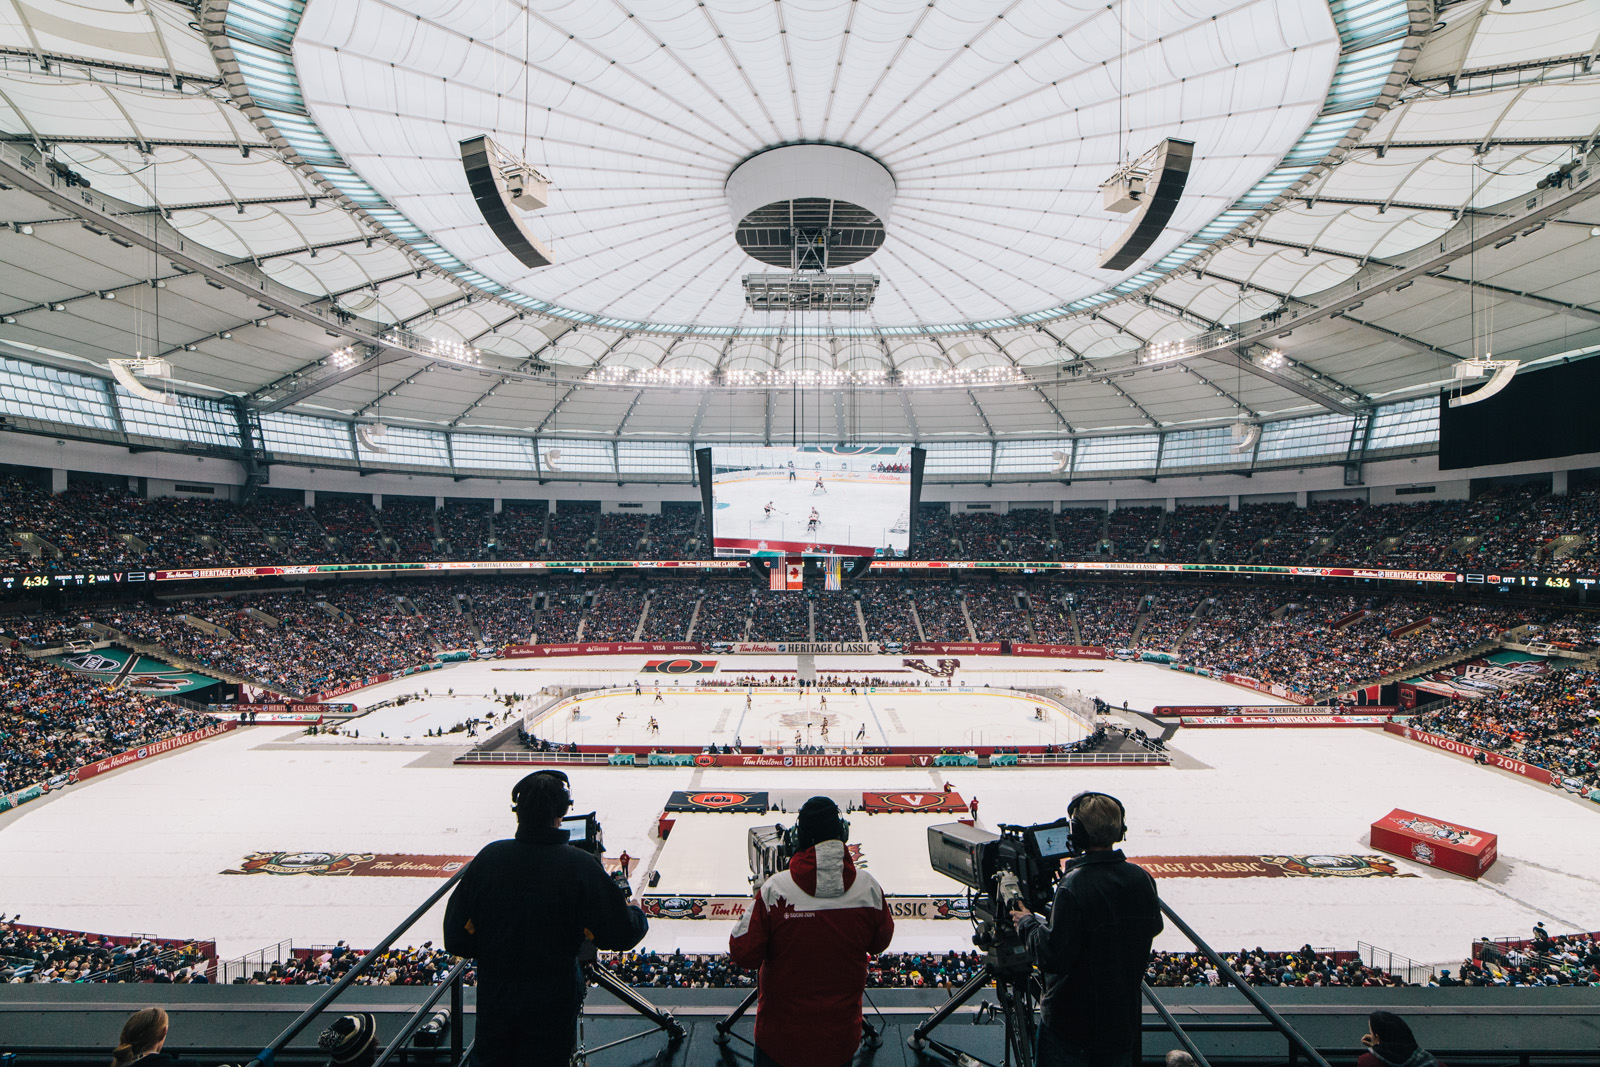 vancouver-canucks-bc-place-heritage-classic